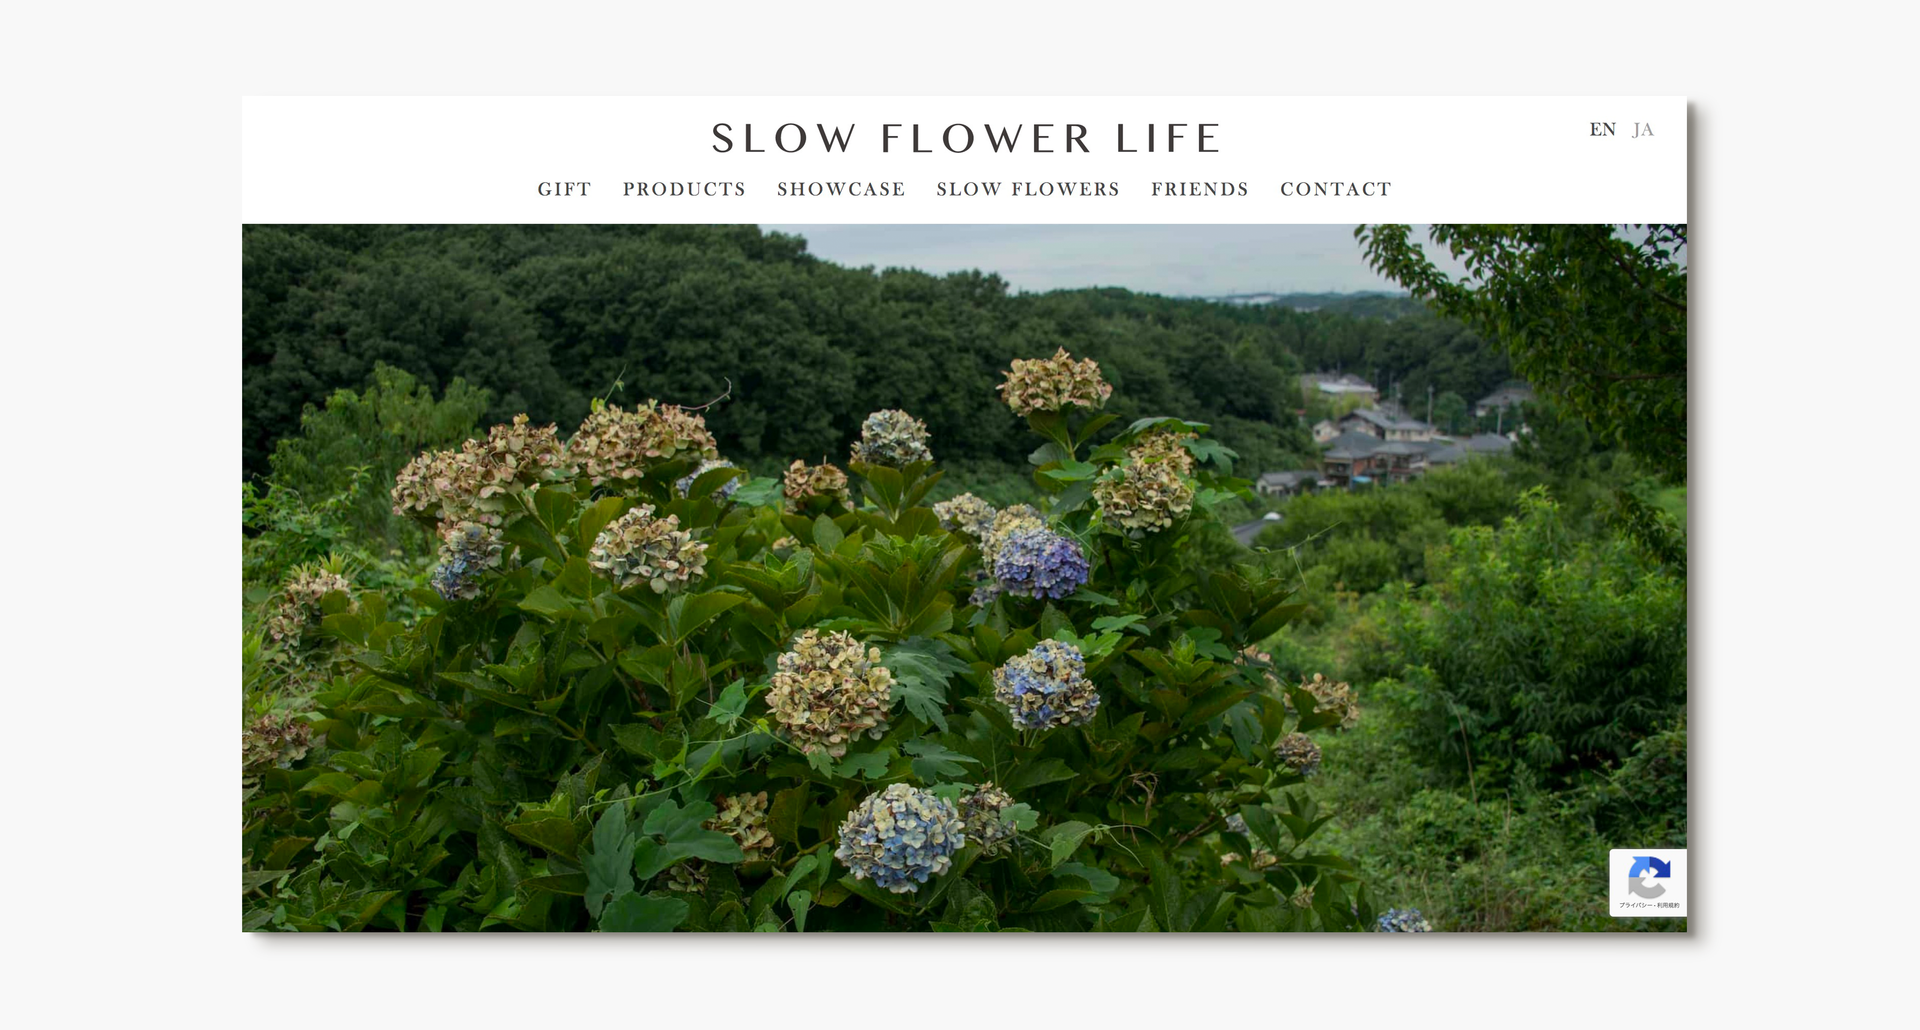 2018 Slow Flower Life